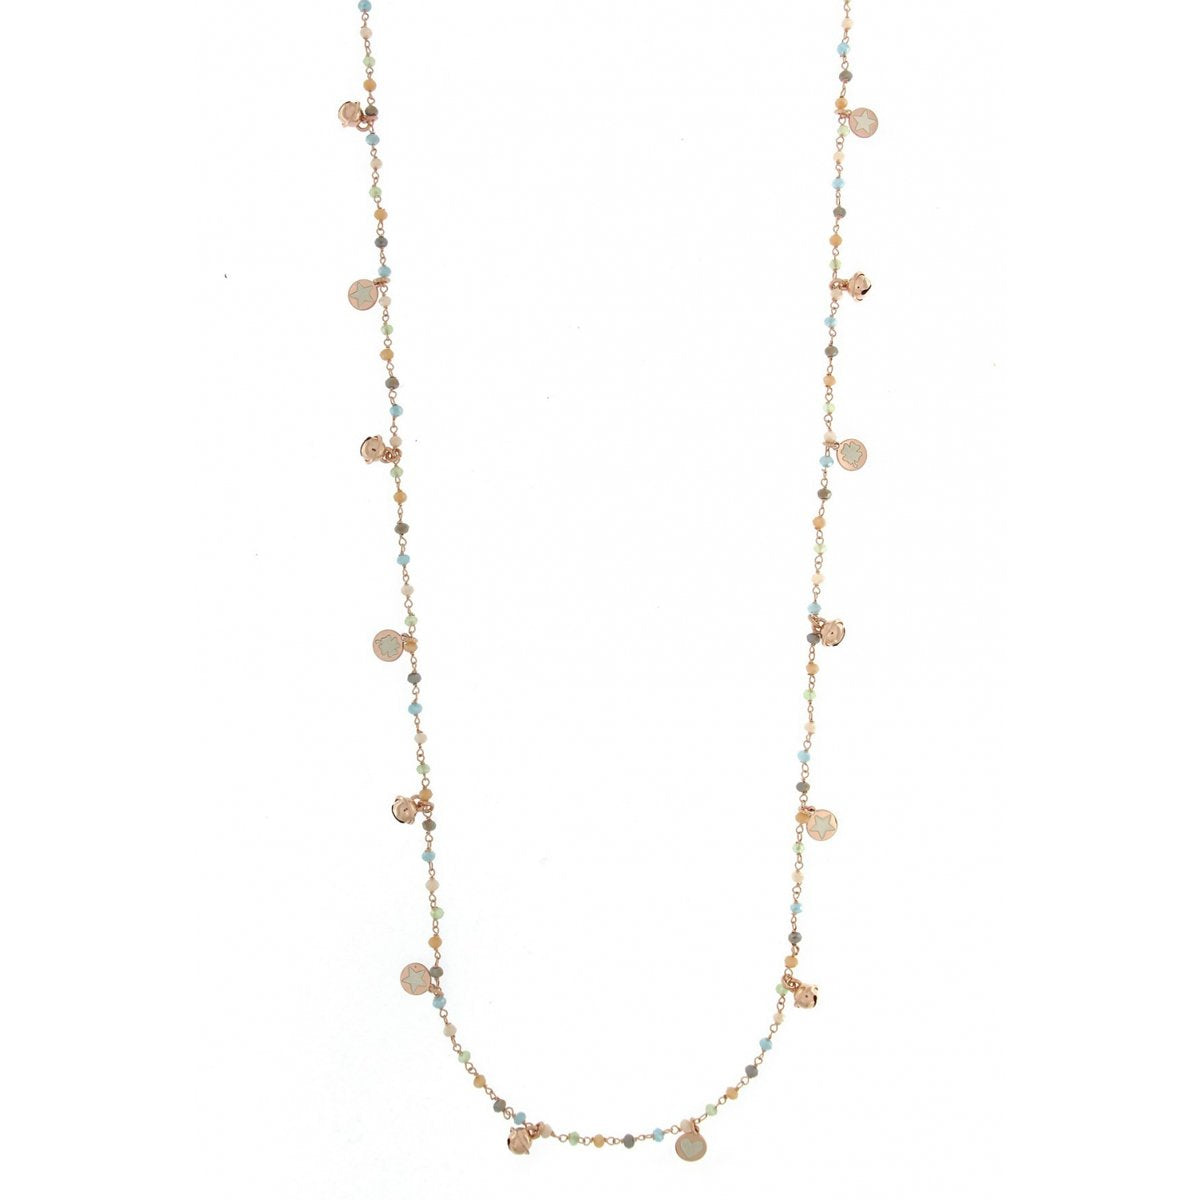 Collares - Collar Gipsy Chic Vol. 2 - 1 | Rue des Mille